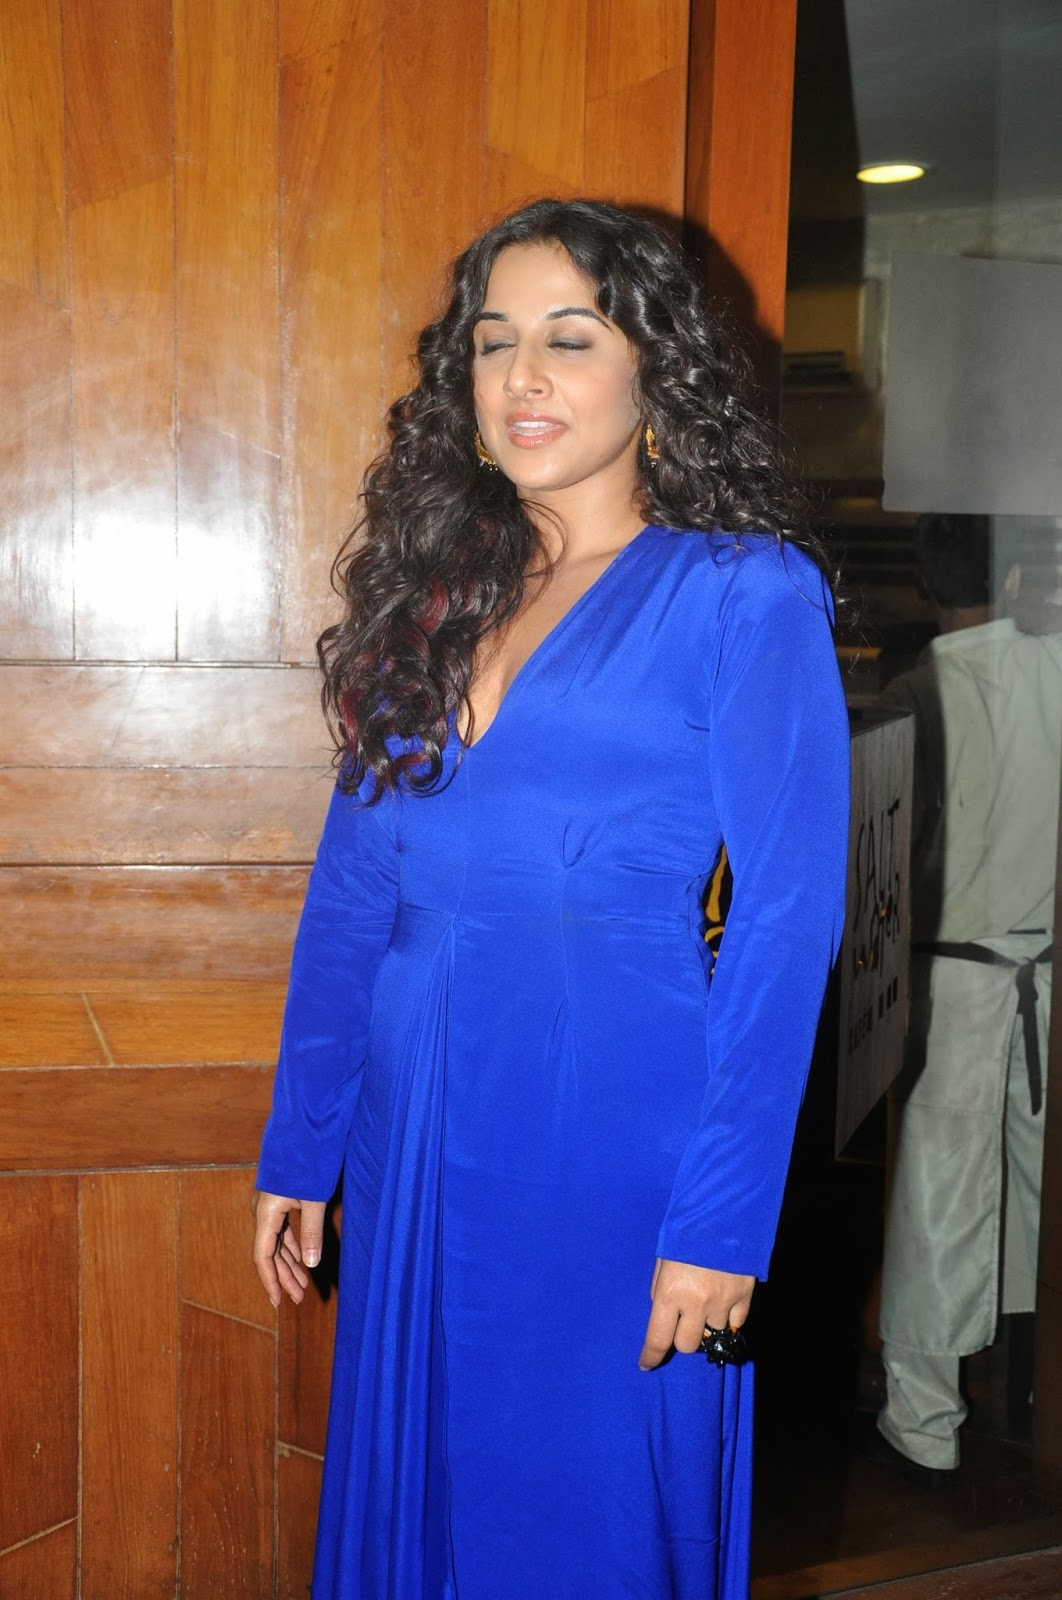 http://1.bp.blogspot.com/-pvnW1o3xGgo/Uu0lZOyiElI/AAAAAAABo_Q/oBxaNy1UEmw/s1600/Vidya-Balan-And-Dia-Mirza-at-Bobby-Jasoos-Wrap-Up-Party-26.JPG